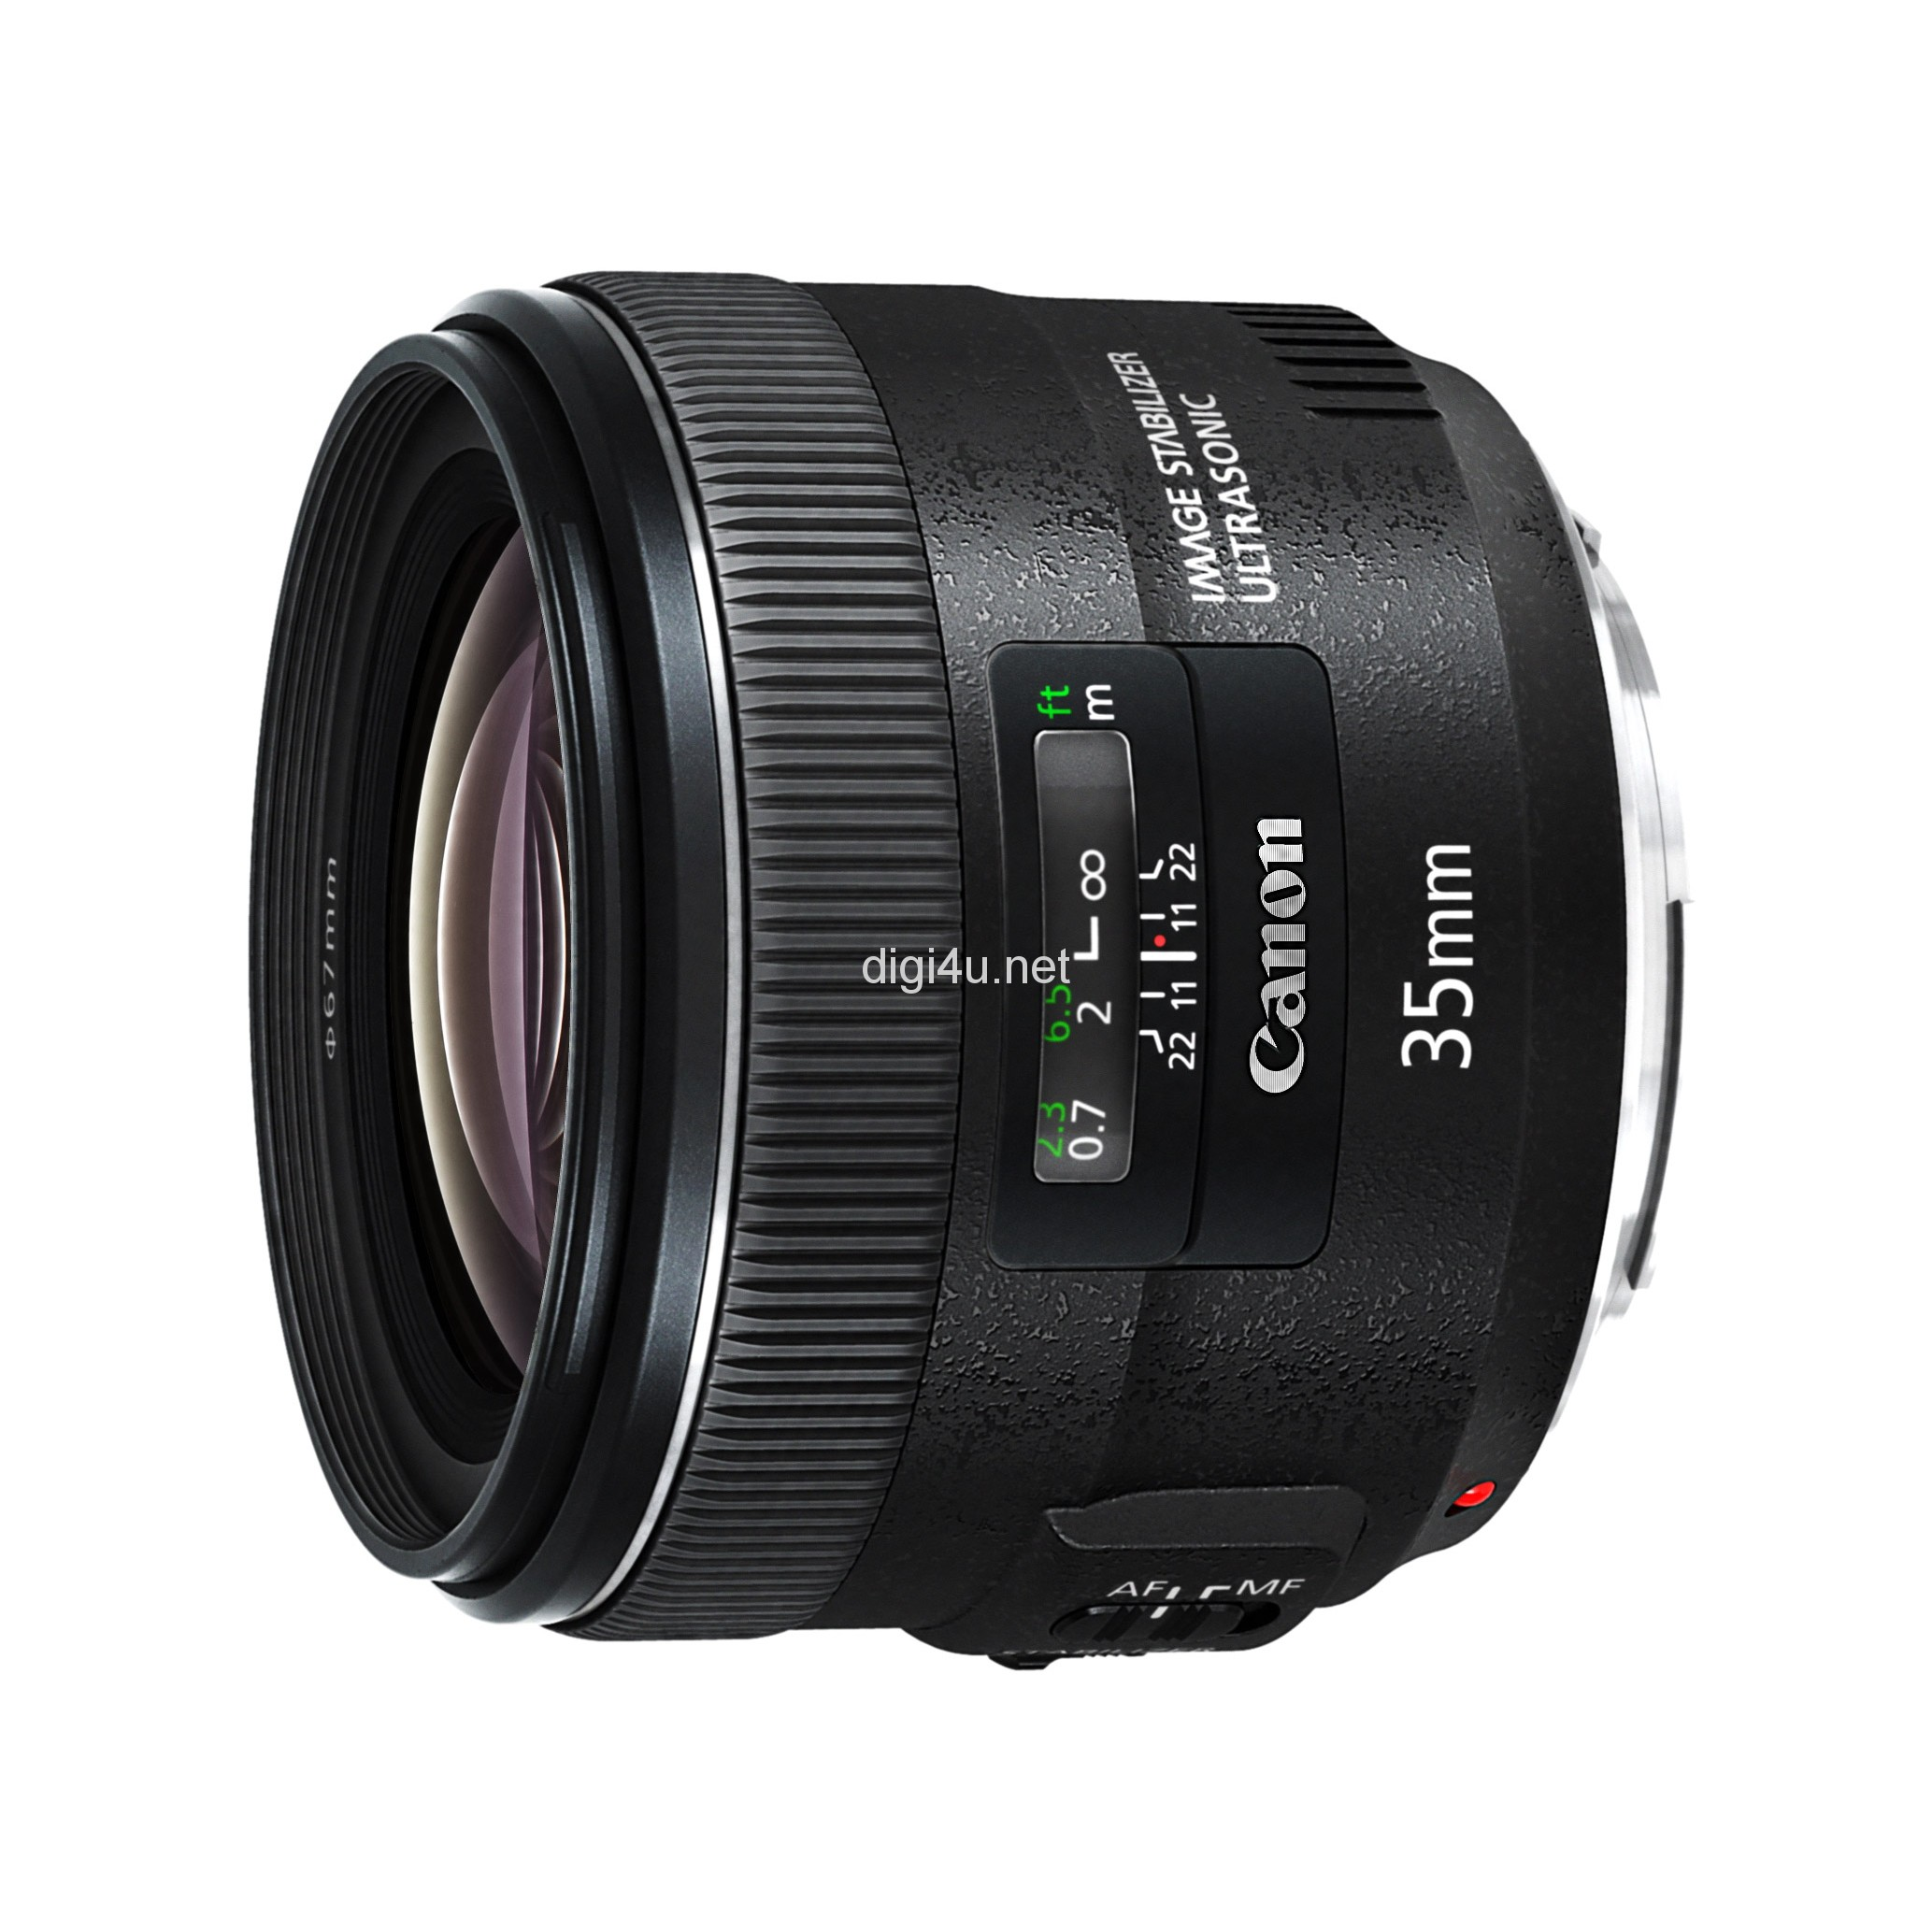 Canon EF 35mm f/2.0 IS USM / Mới 99%